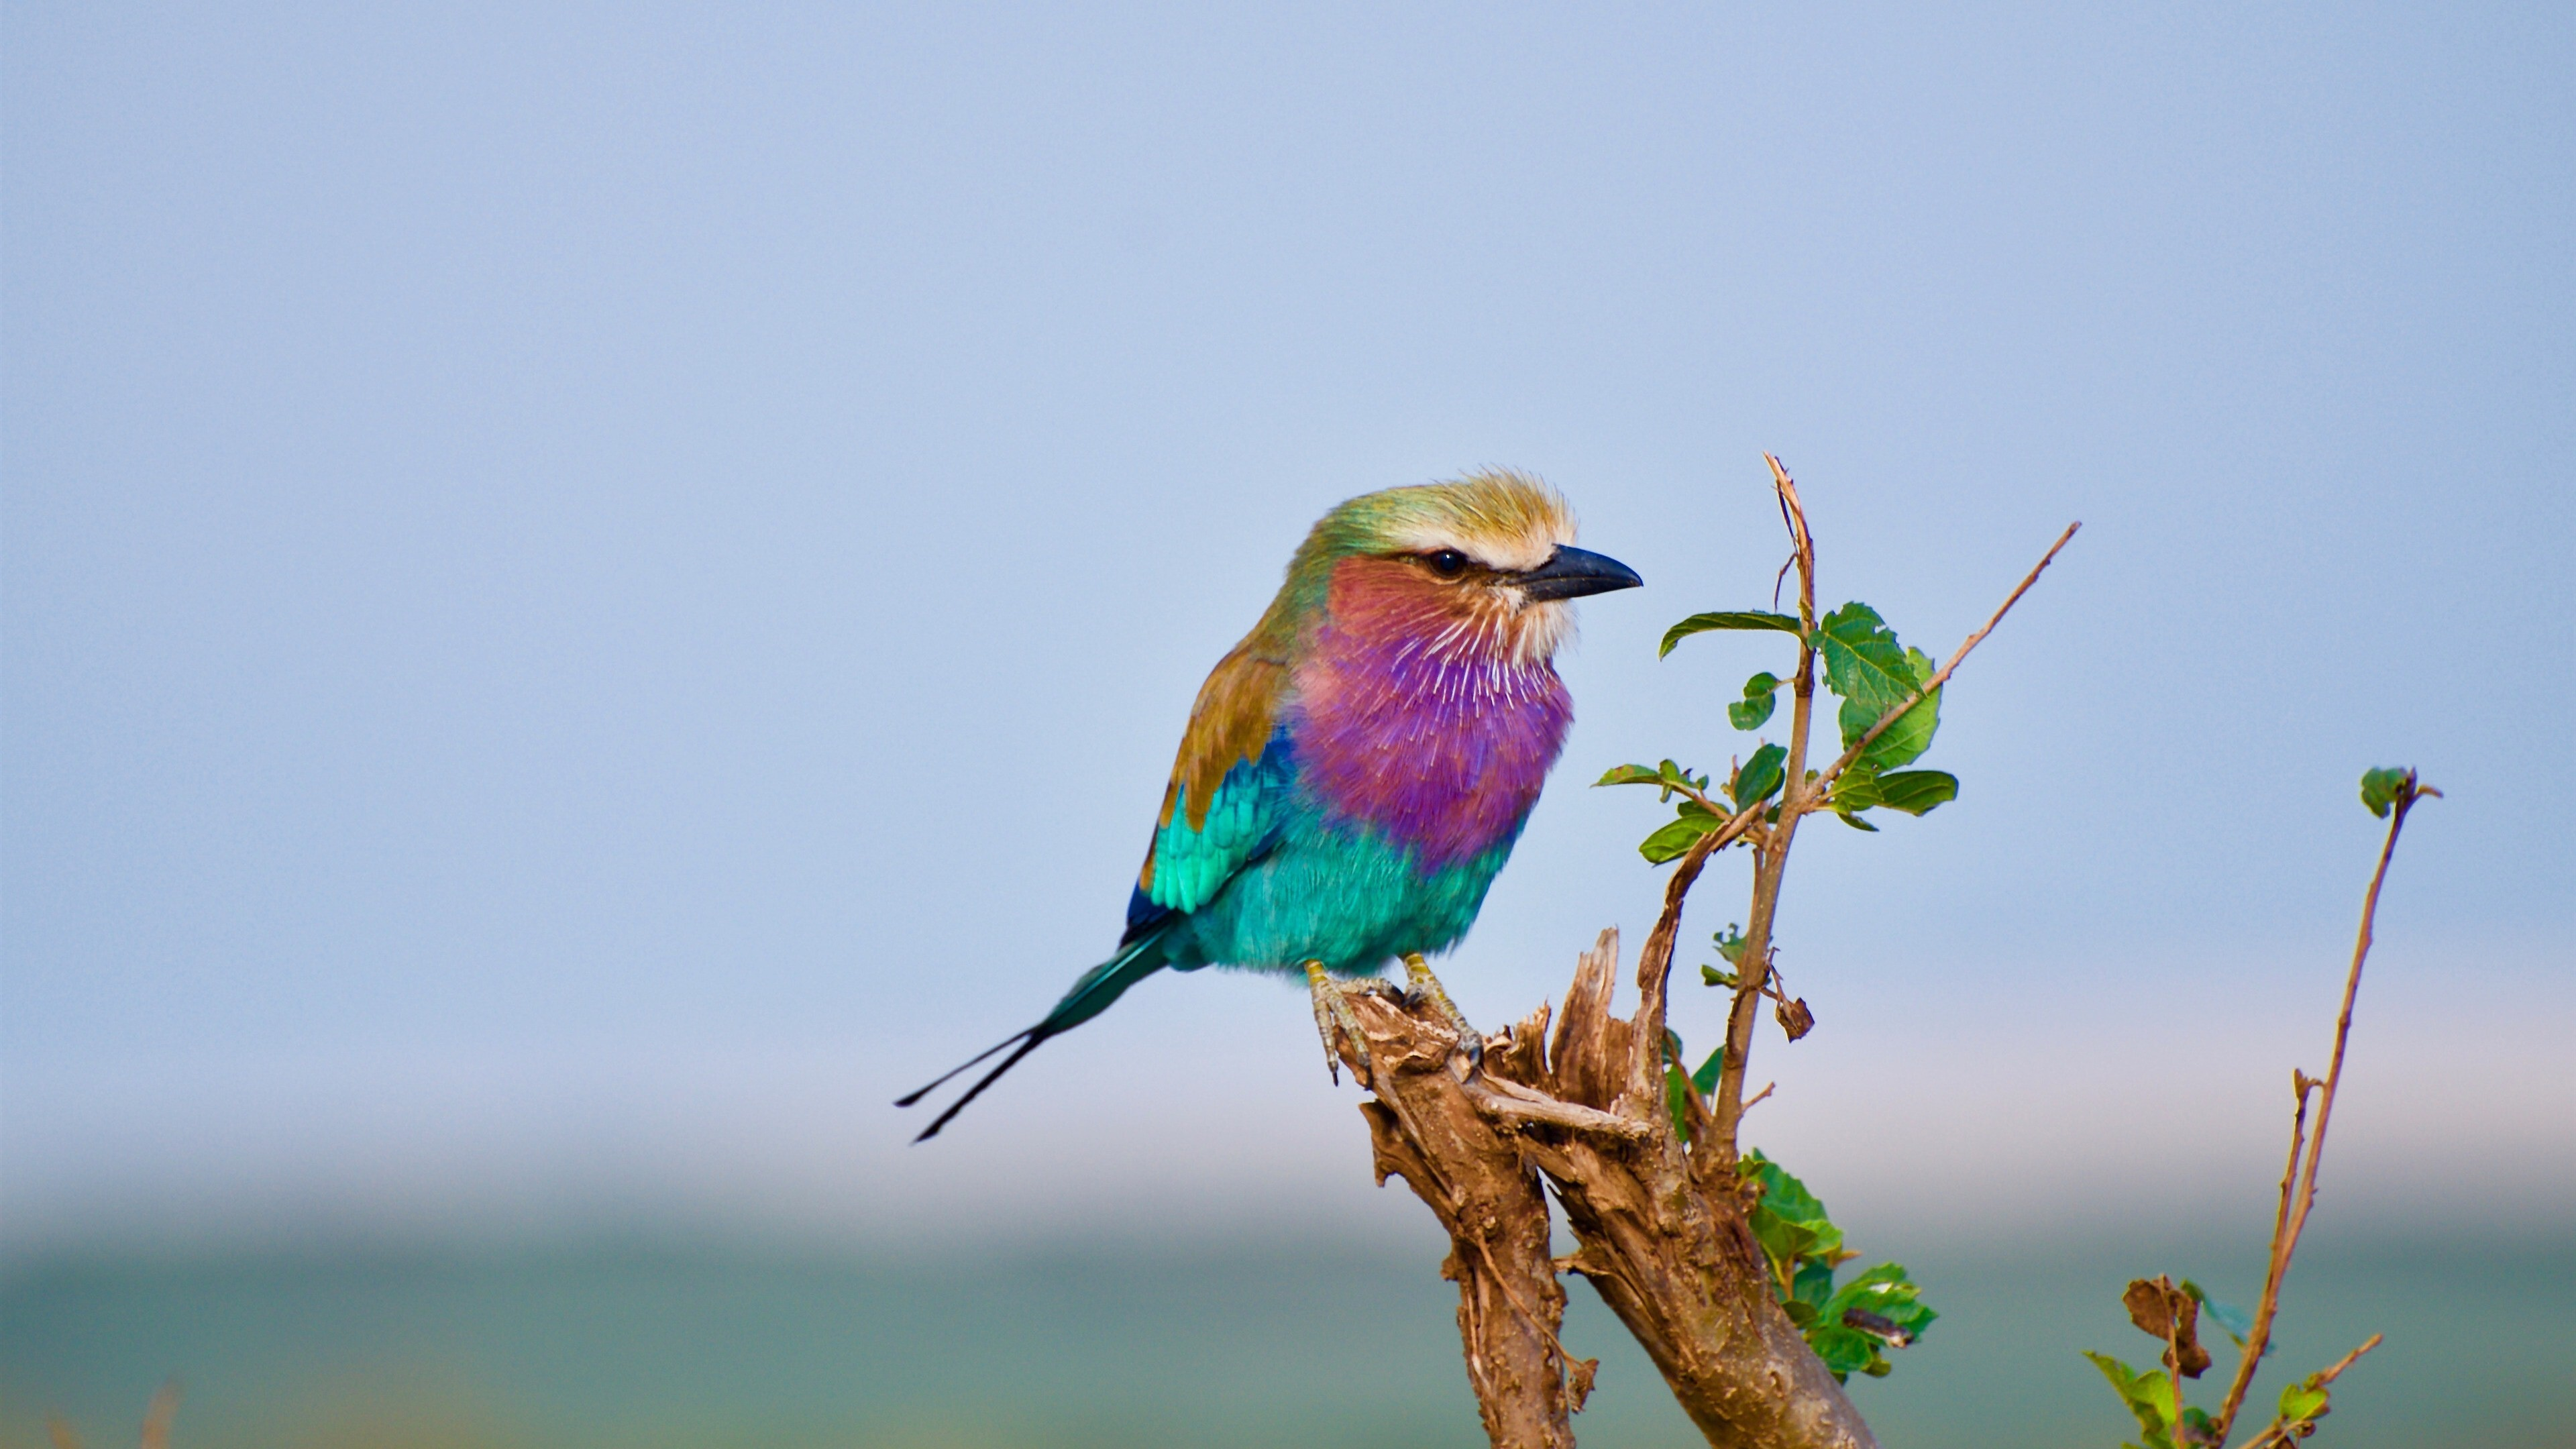 Small Colorful Bird 4K Photo | HD Wallpapers